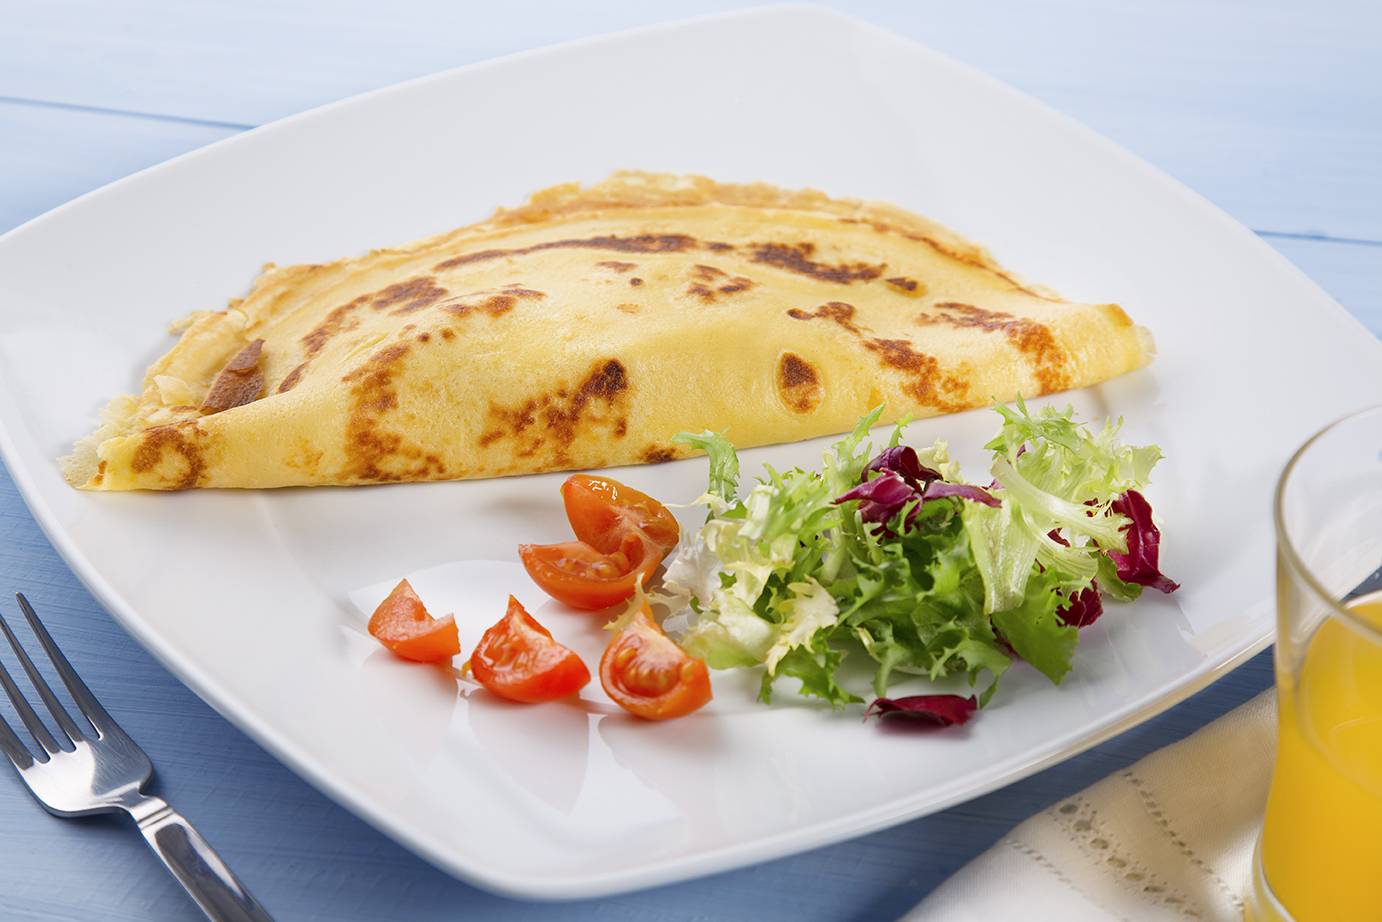 Crepes de Sr. Bacalhau